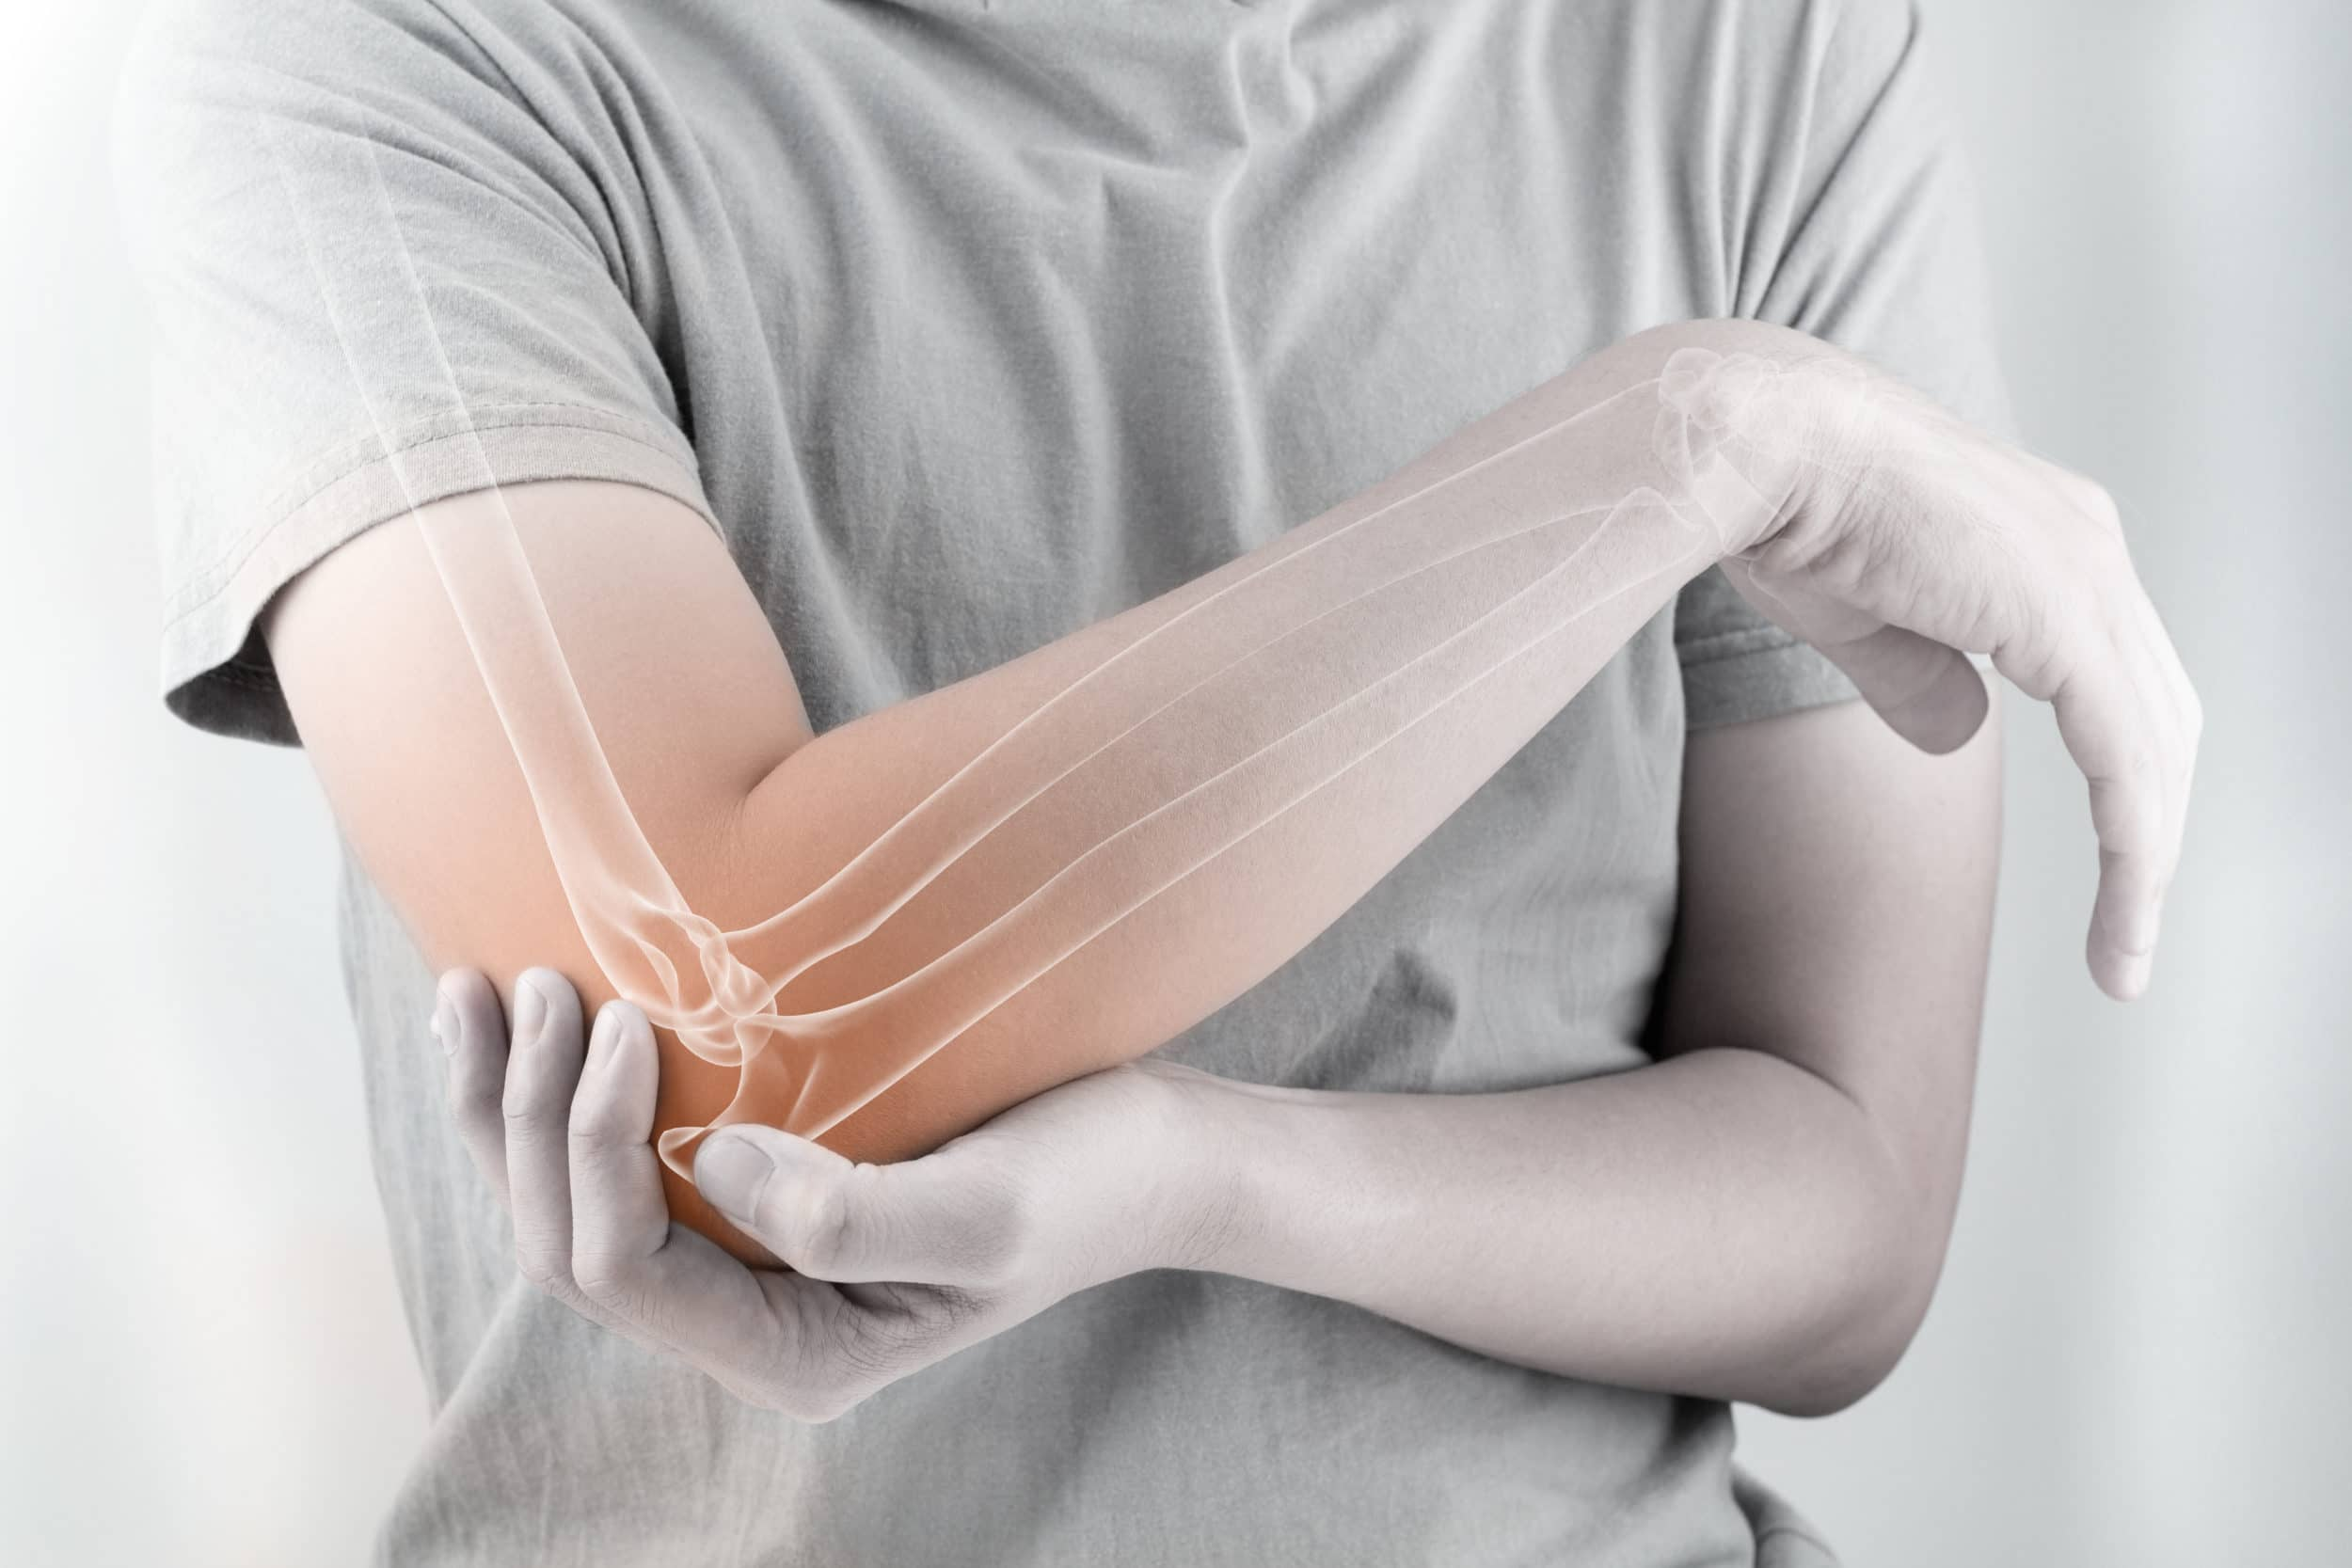 Holding elbow with bone pain